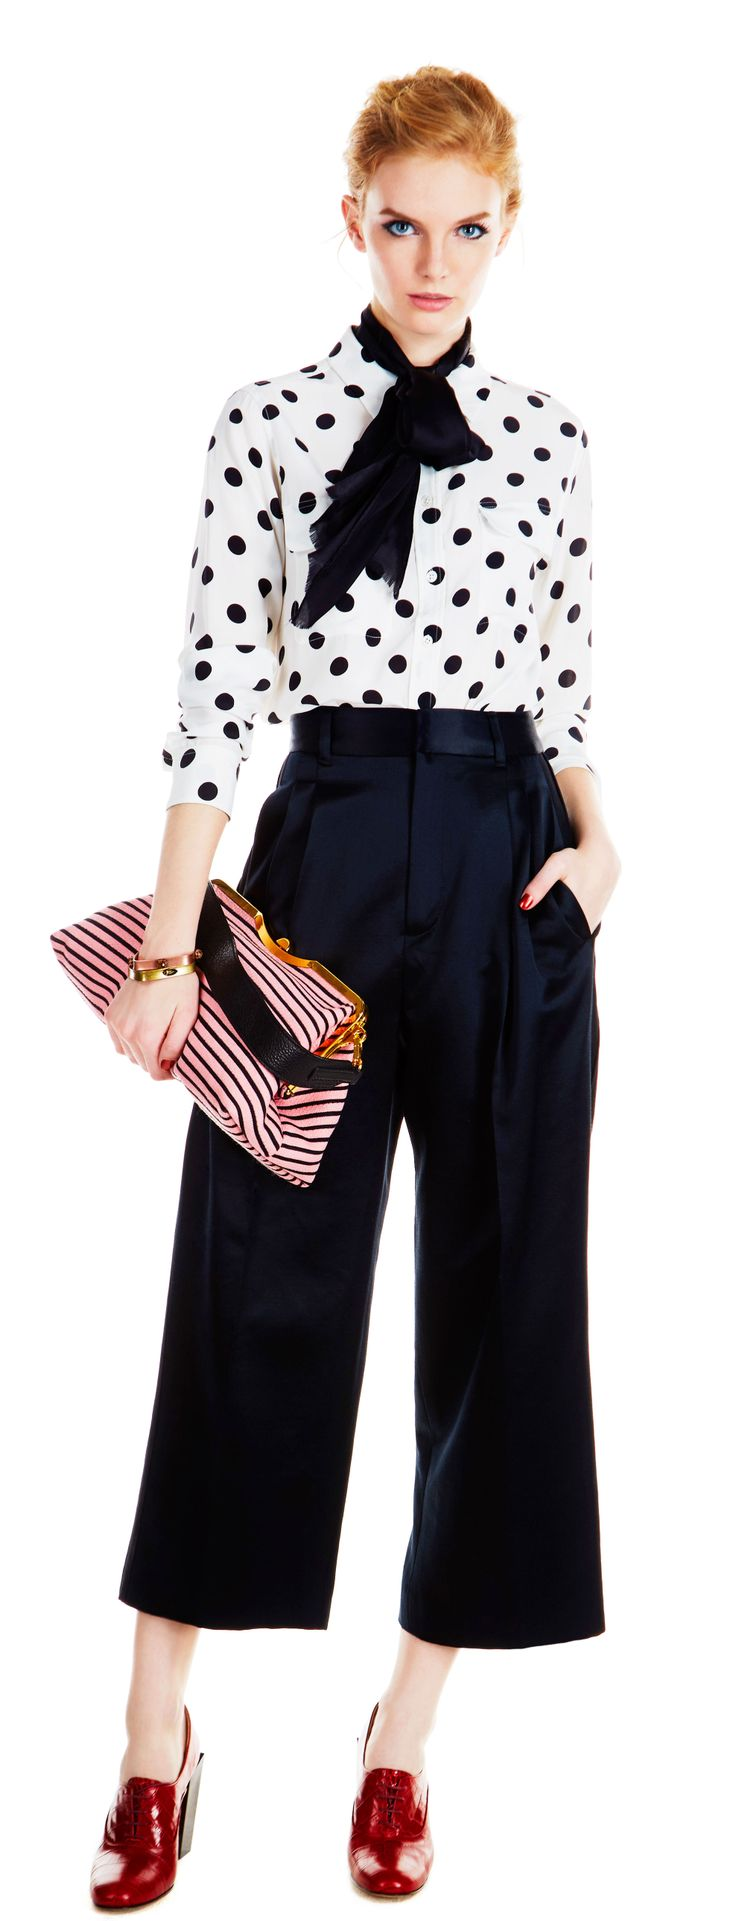 Mix clashing prints, like polka dots and stripes.  Equipment Slim Signature Blouse ($248) in Nature White Dot Print, Marc by Marc Jacobs Silk Wool Satin Cropped Pants ($368, 323.866.3562) in Black,  Echo Design Solid Silk Oblong Scarf ($38) in Black ,  Capwell+Co Mixed Metal and Stone Square Bangle Set ($32), Miu Miu Jacquard and Leather Tote ($1,790) in Pink and Black